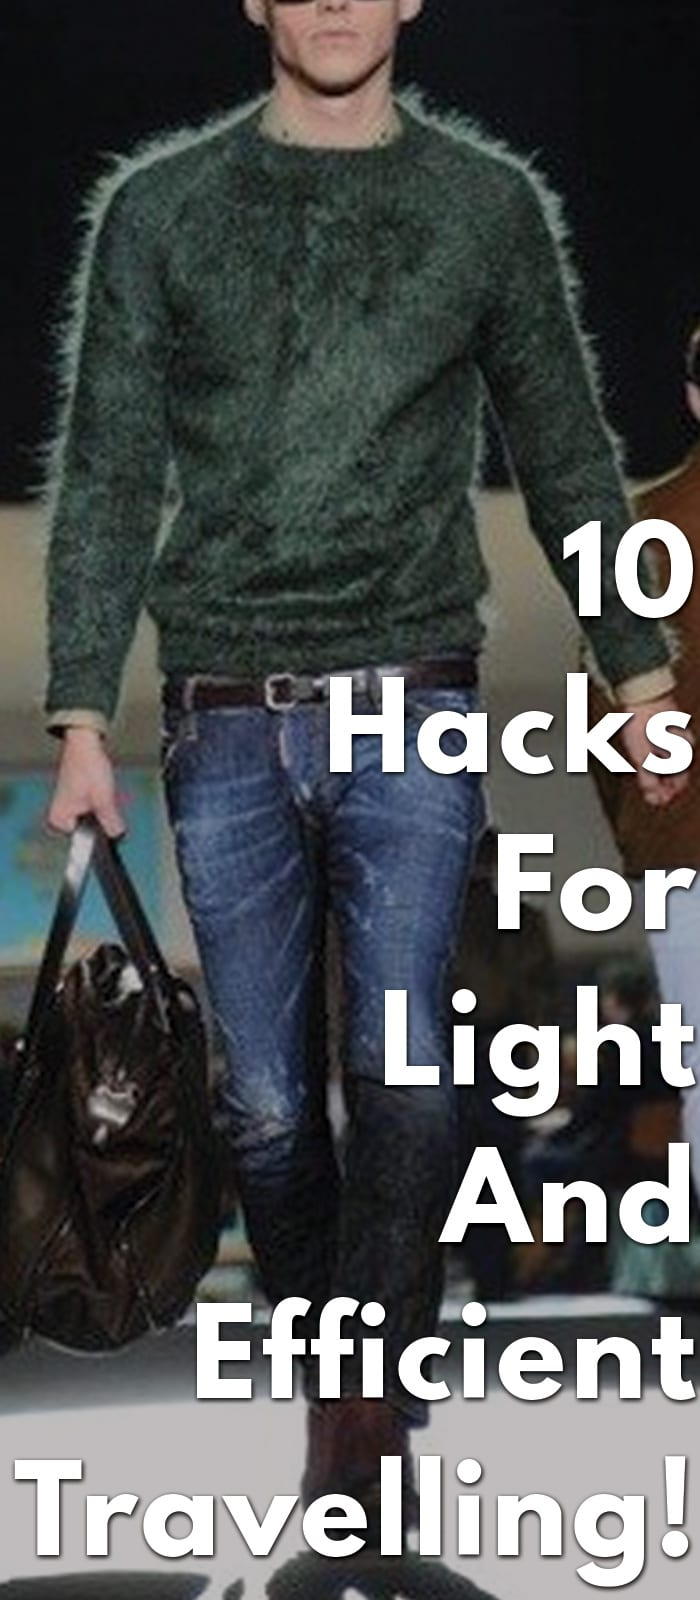 10-Hacks-For-Light-And-Efficient-Travelling!